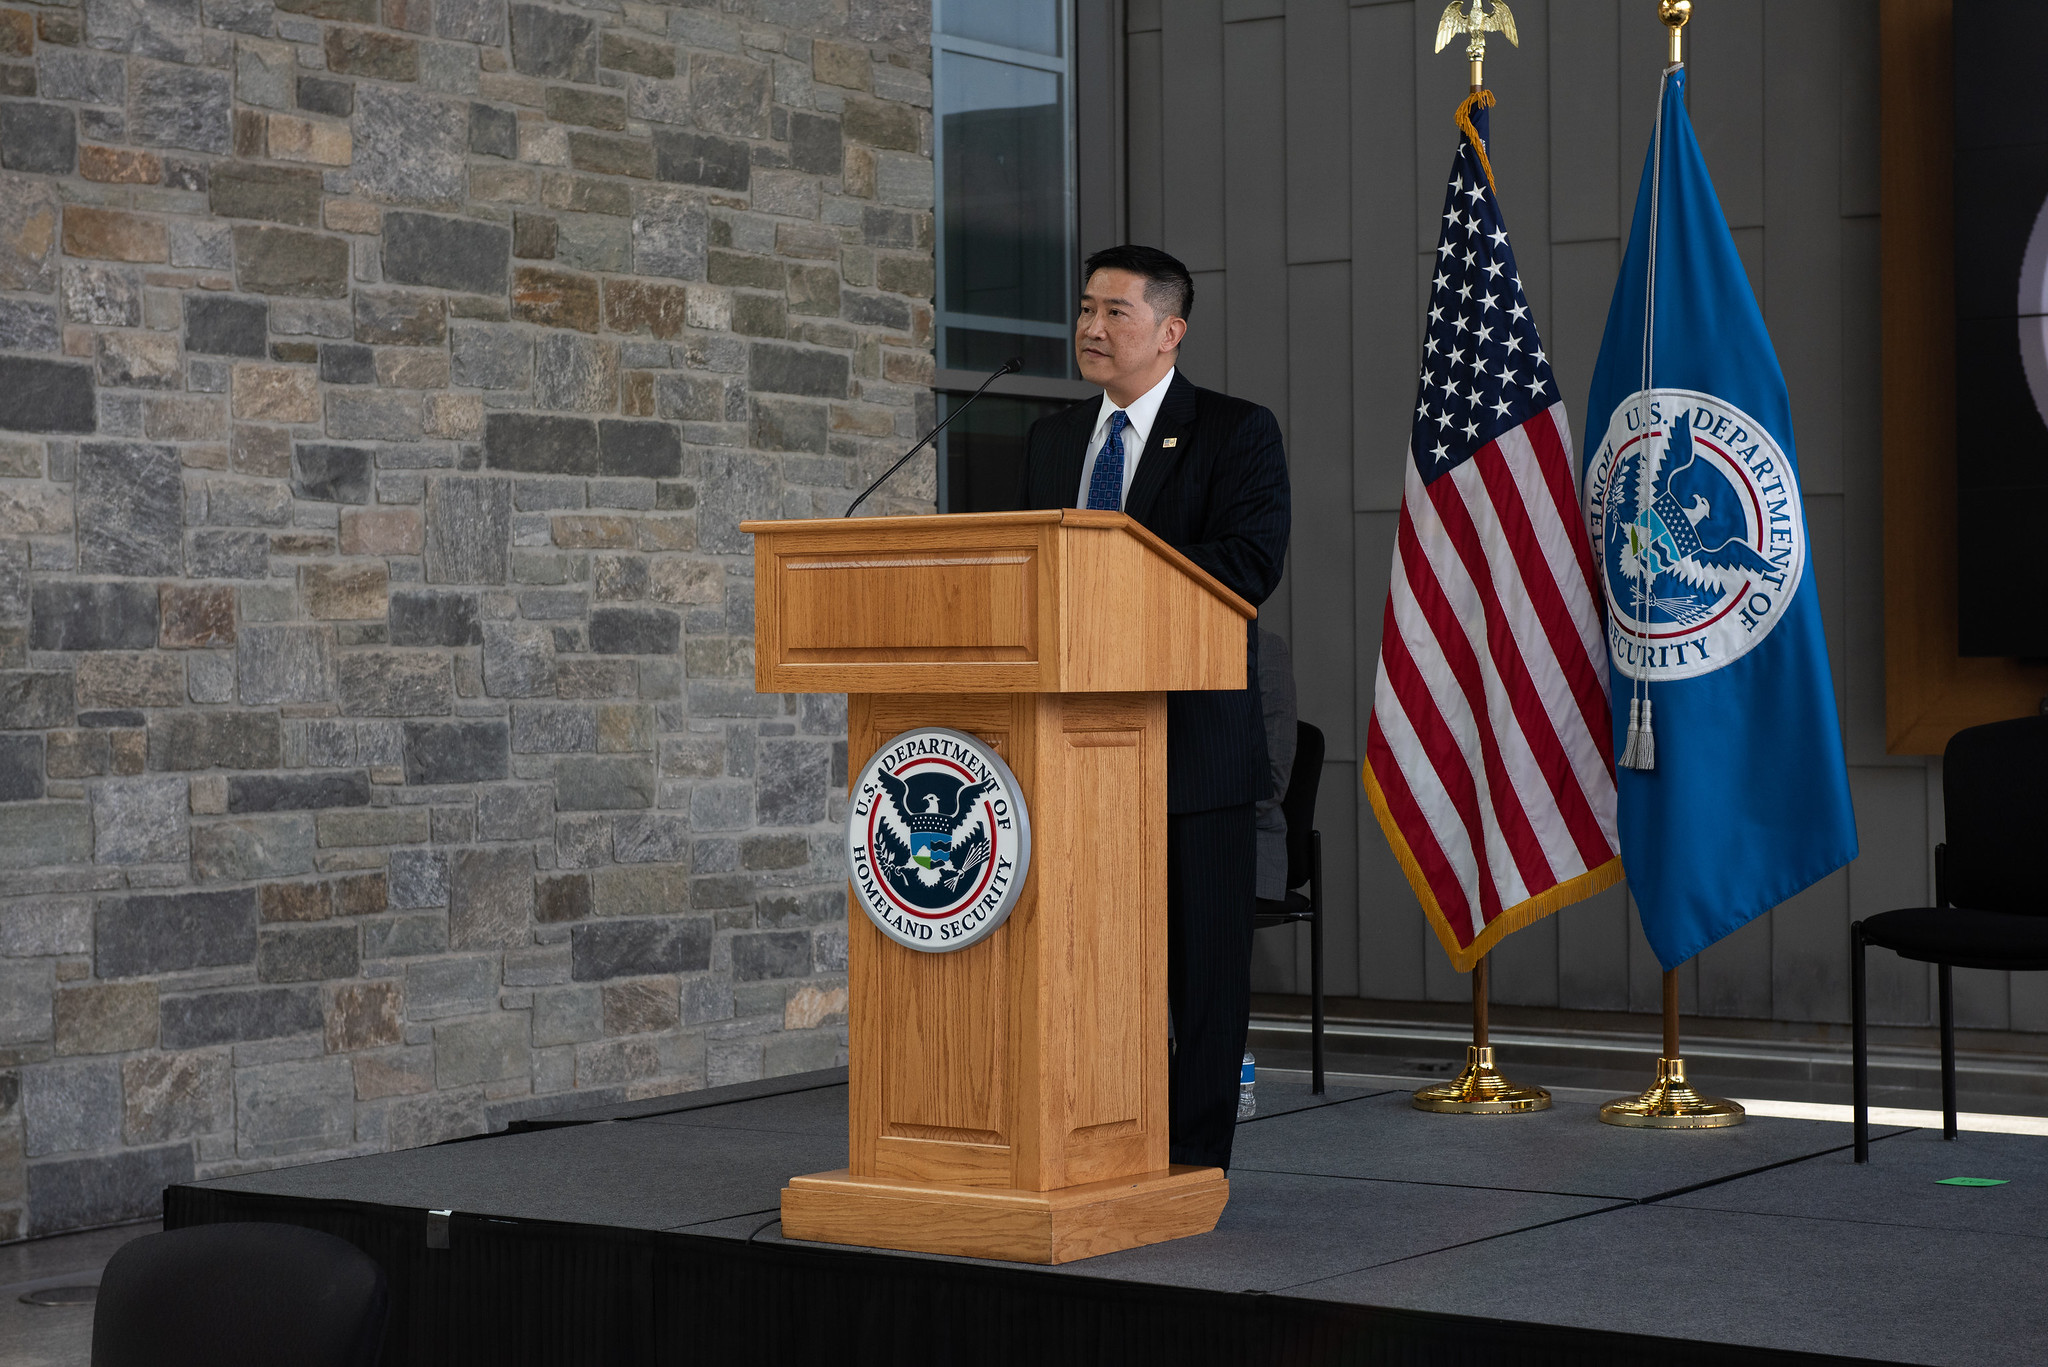 Immigration and Customs Enforcement Acting Director Tony Pham.